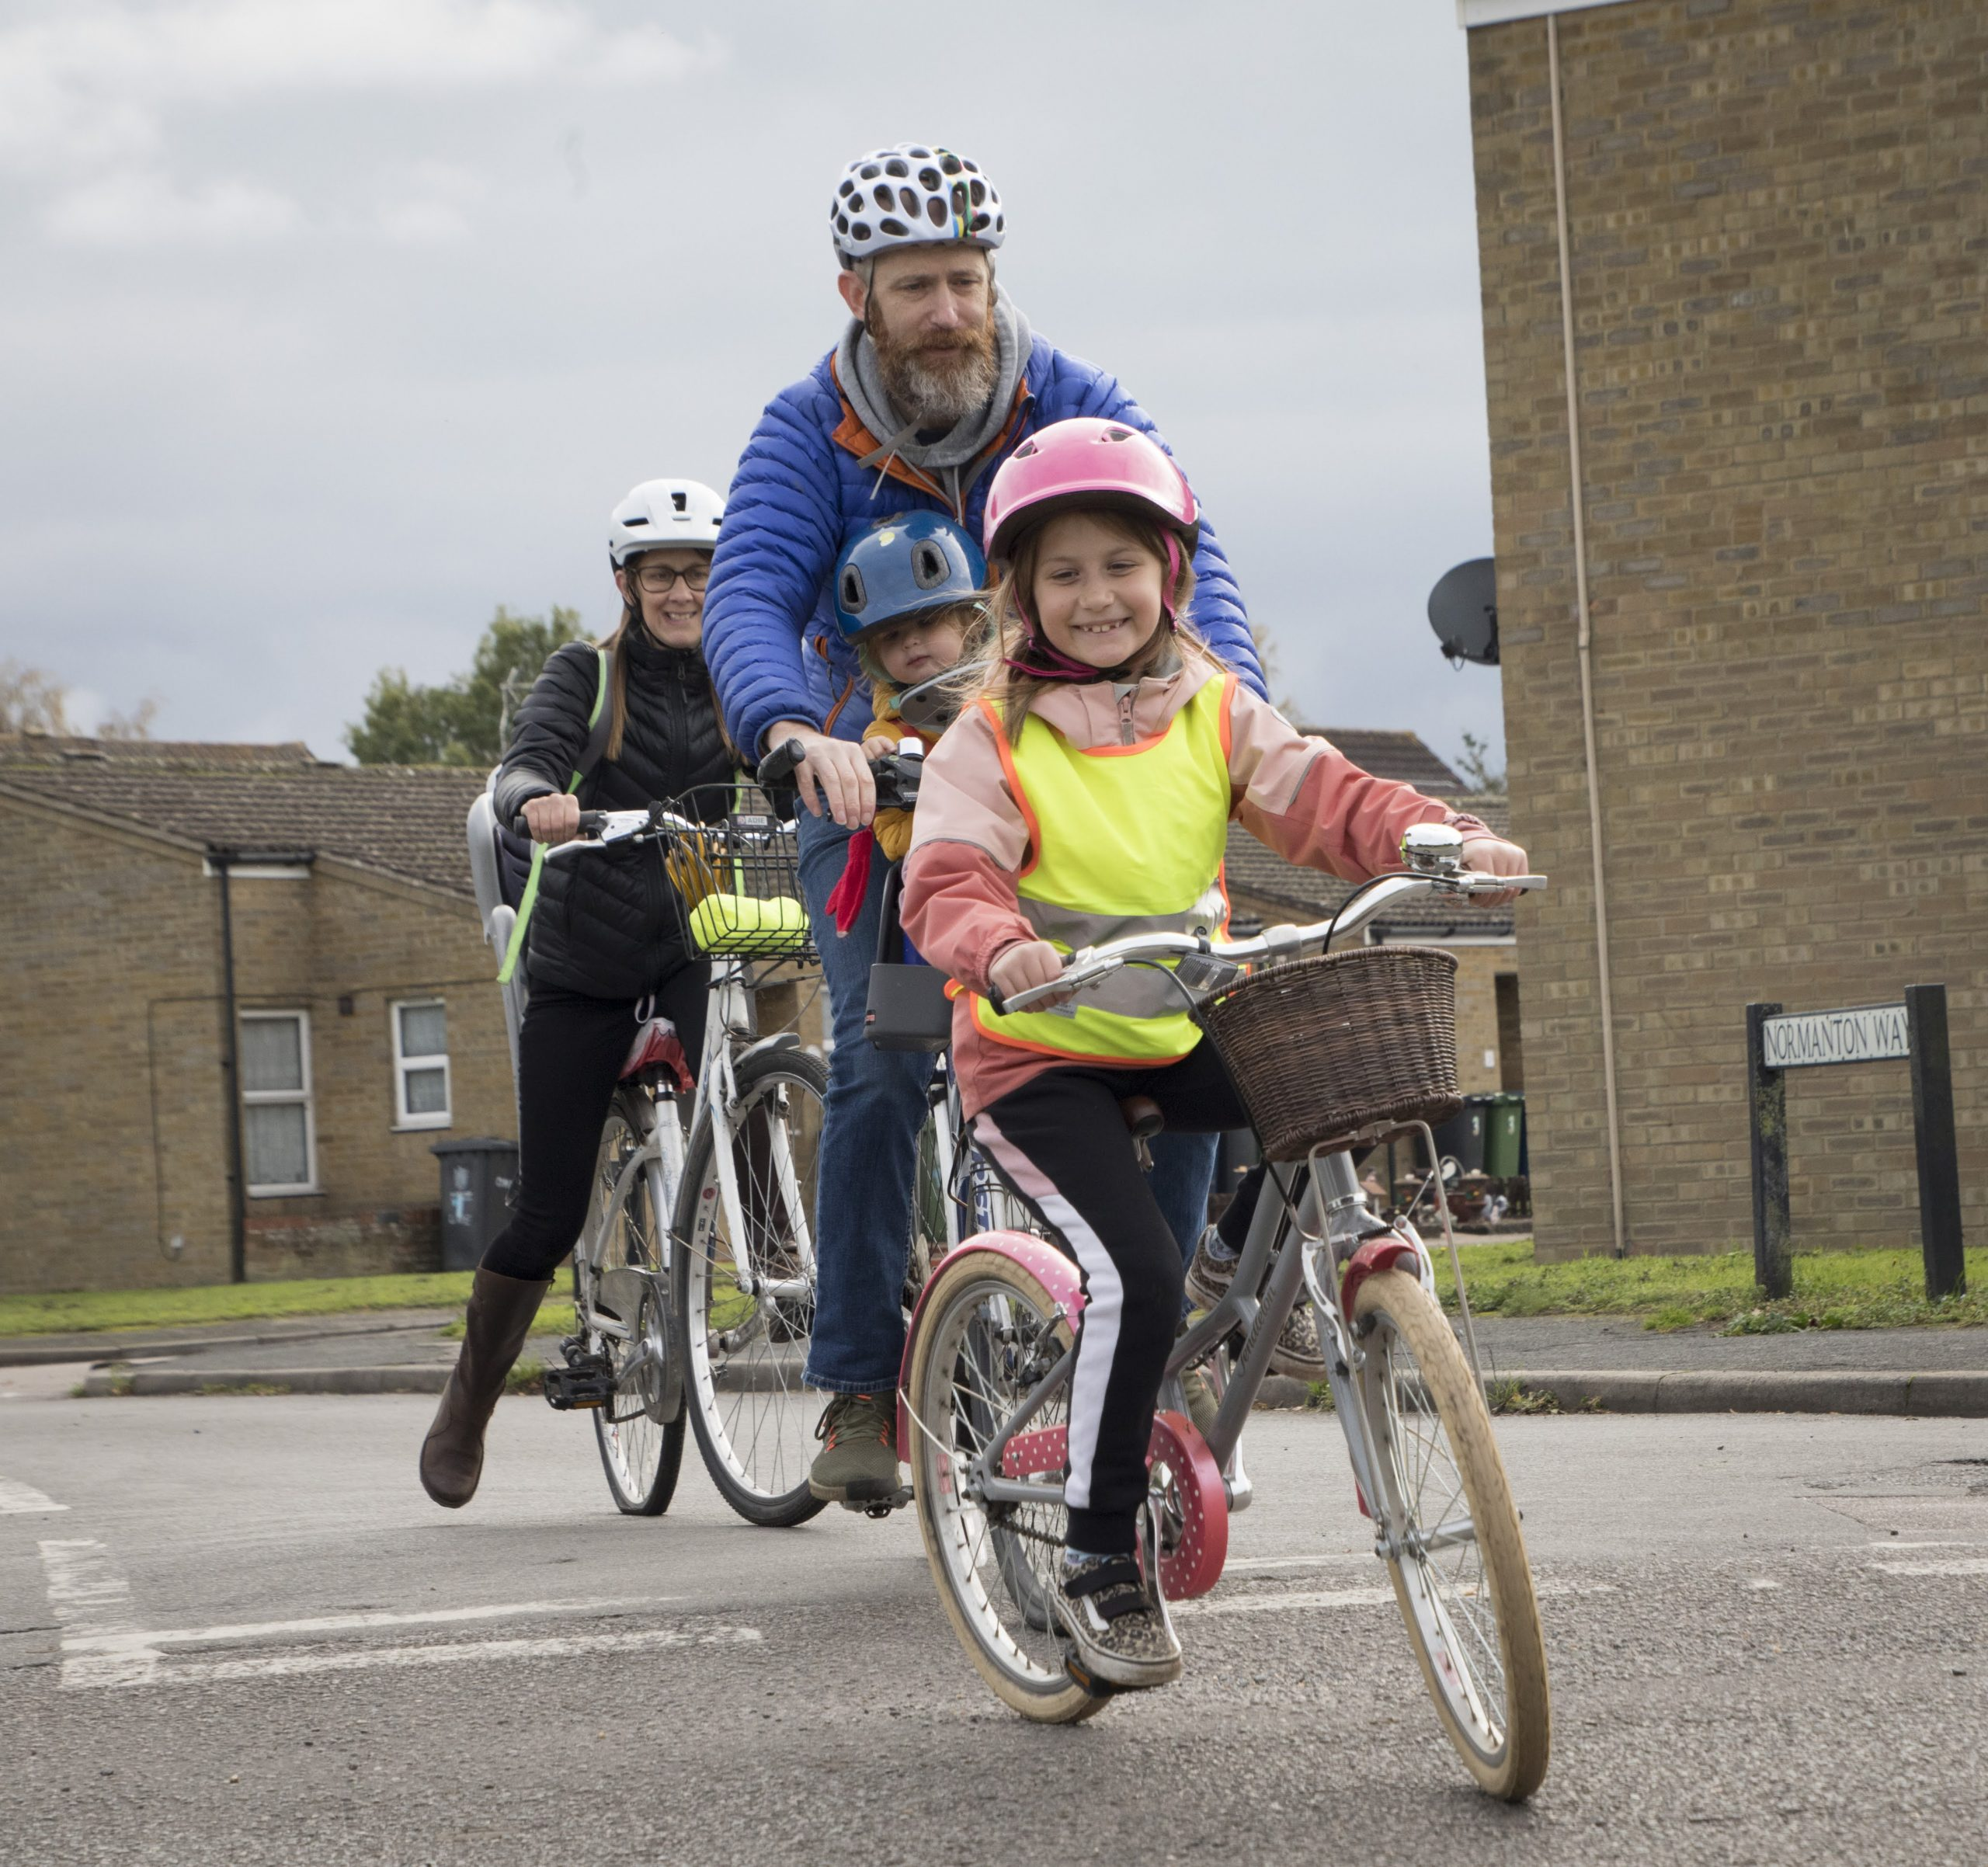 A young girl smiling on a bike with her dad and mum behind her on bikes